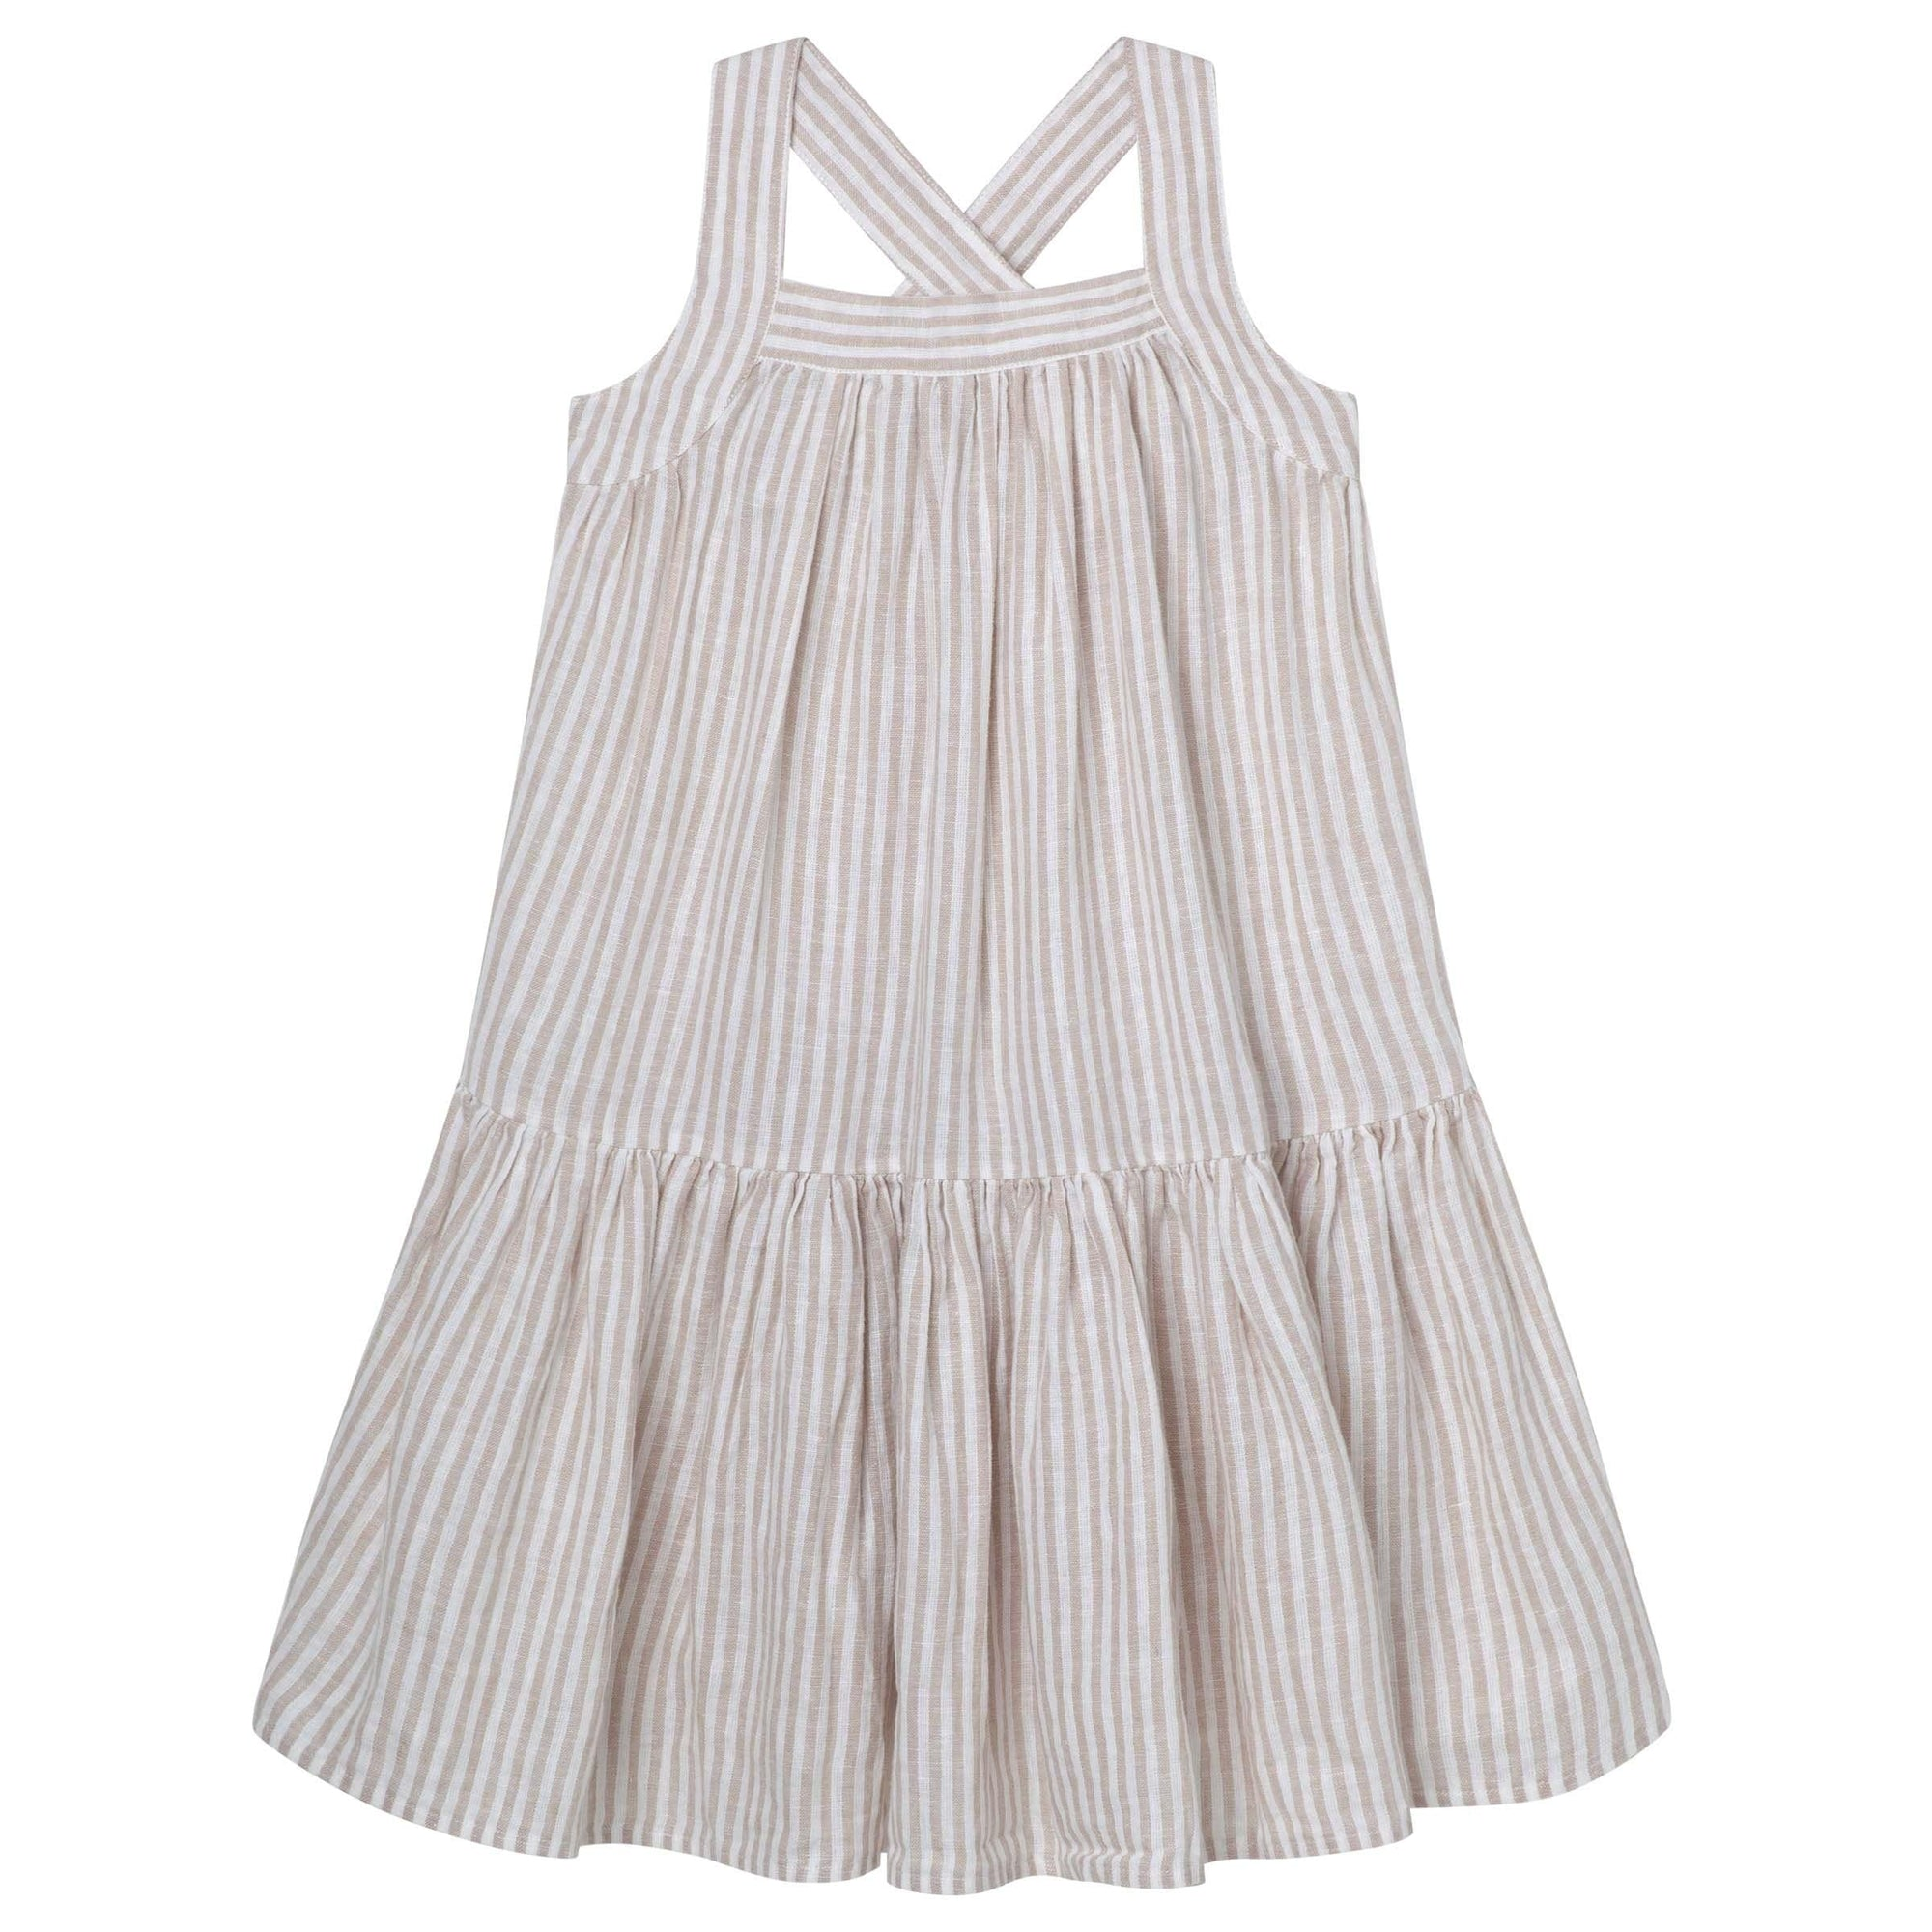 Designer Kidz Cross Strap Dress - Oatmeal Stripe